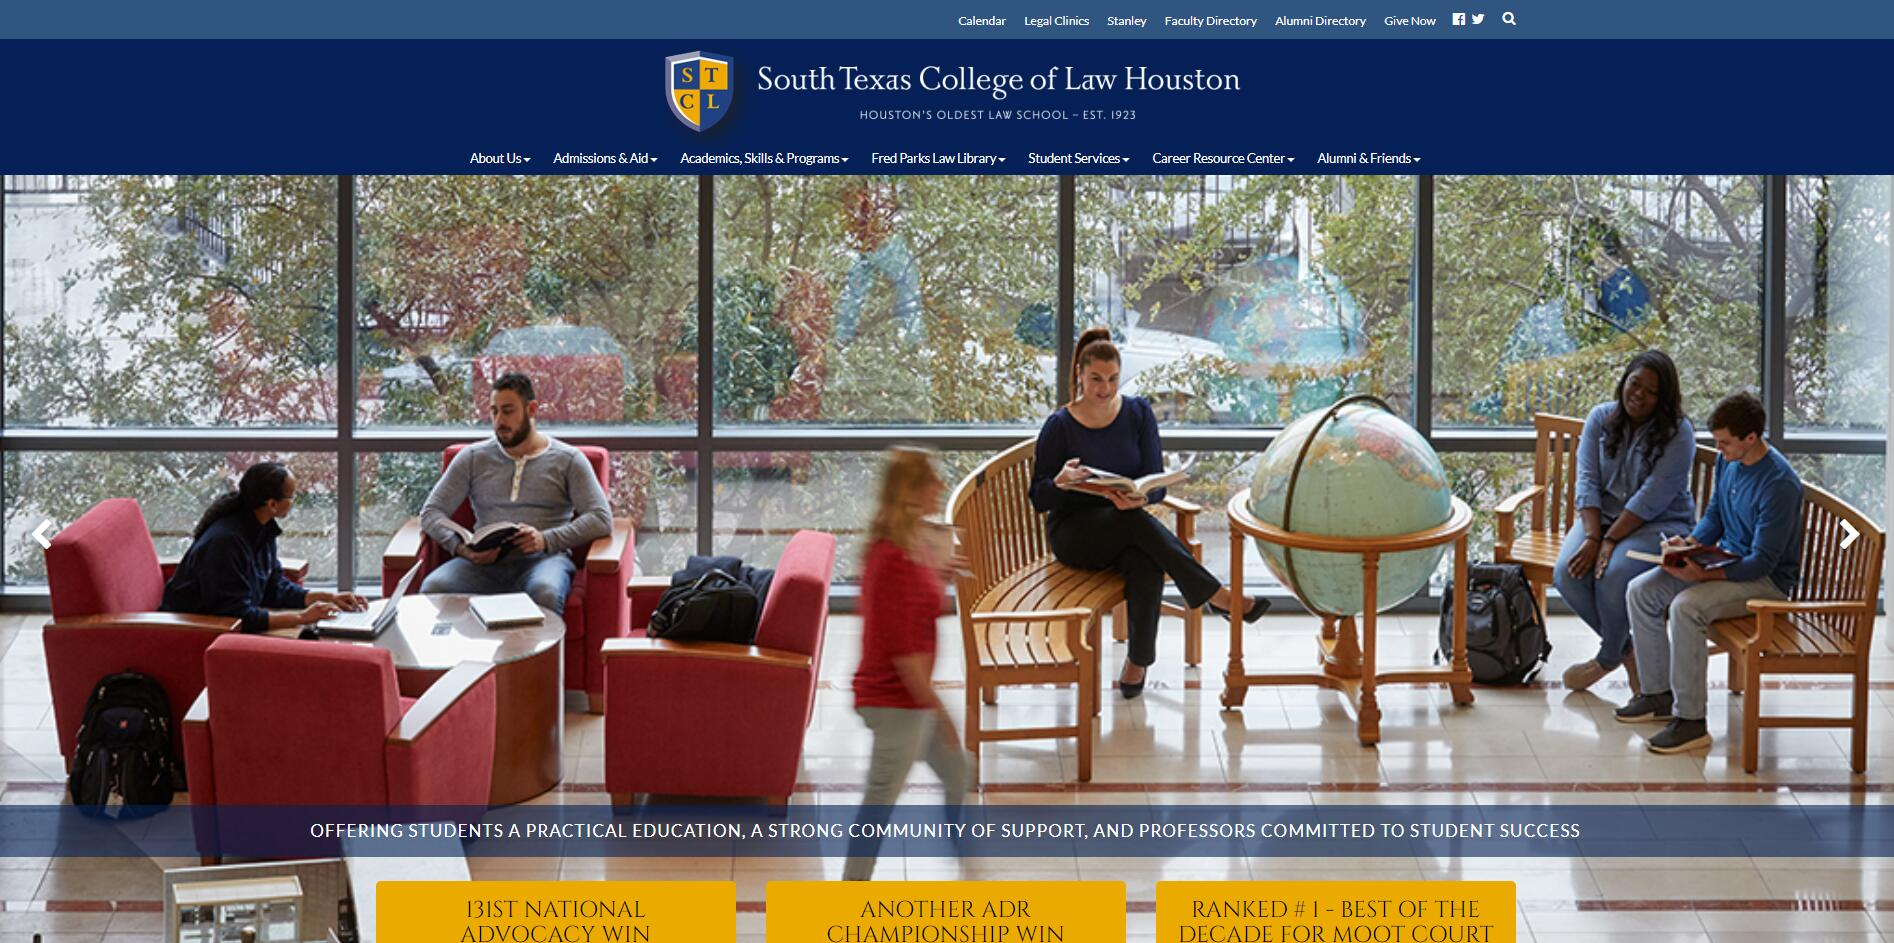 South Texas College of Law